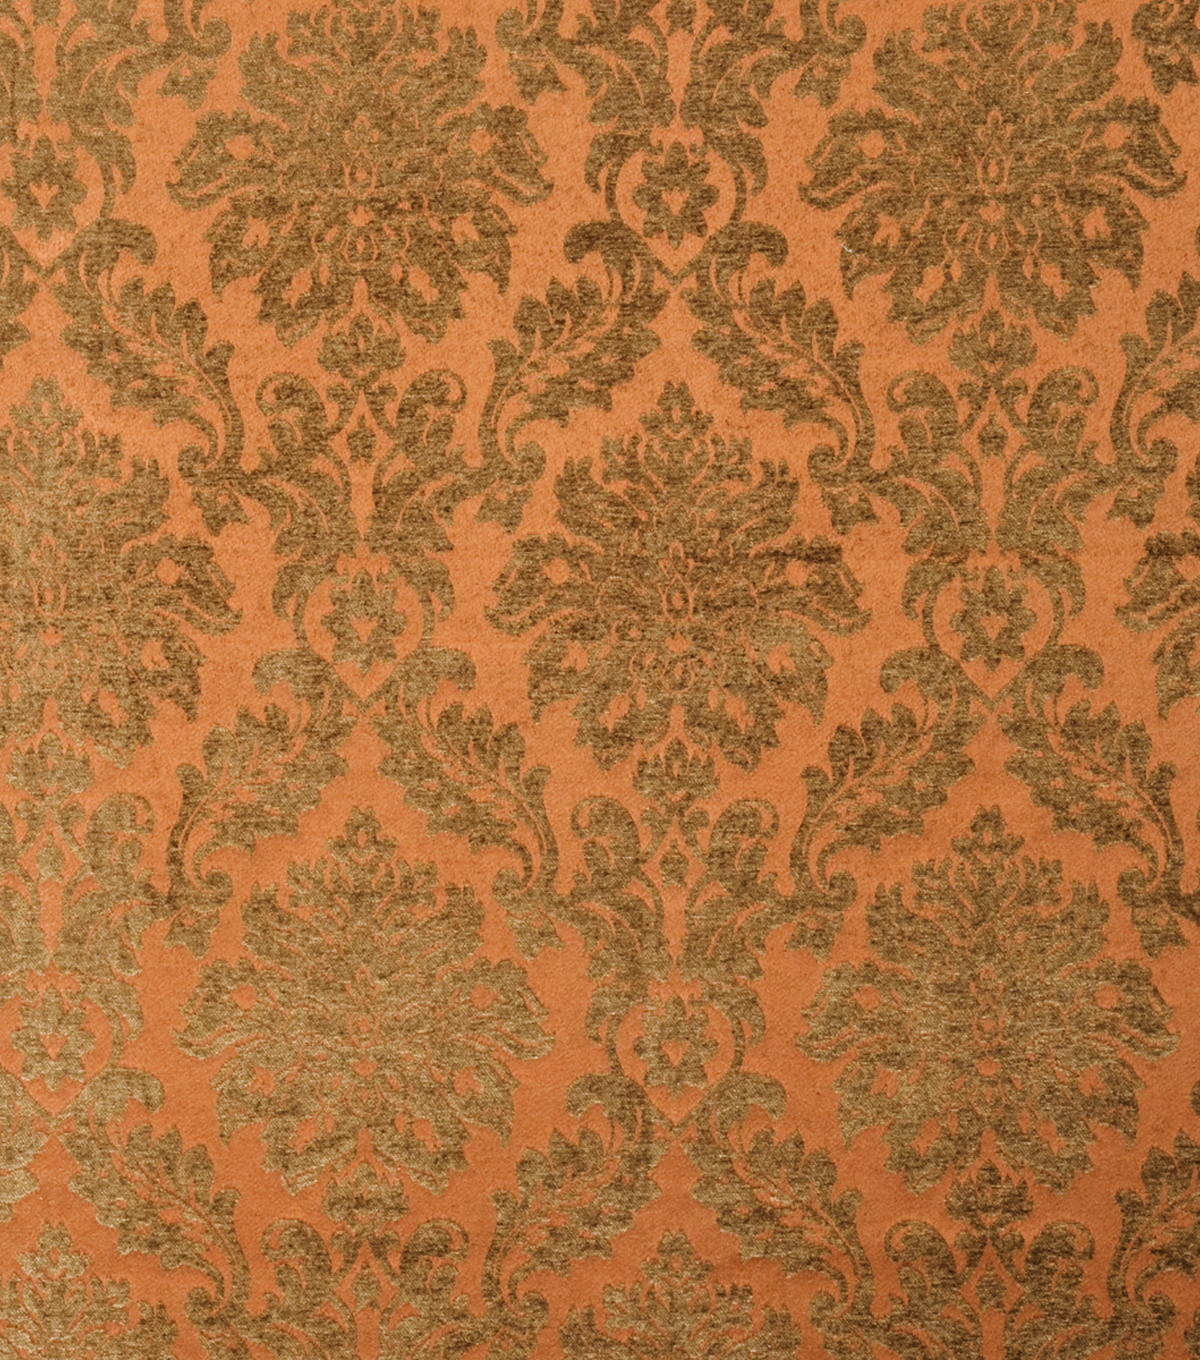 Home Decor 8\u0022x8\u0022 Fabric Swatch-Jaclyn Smith Smirnoff-Pottery